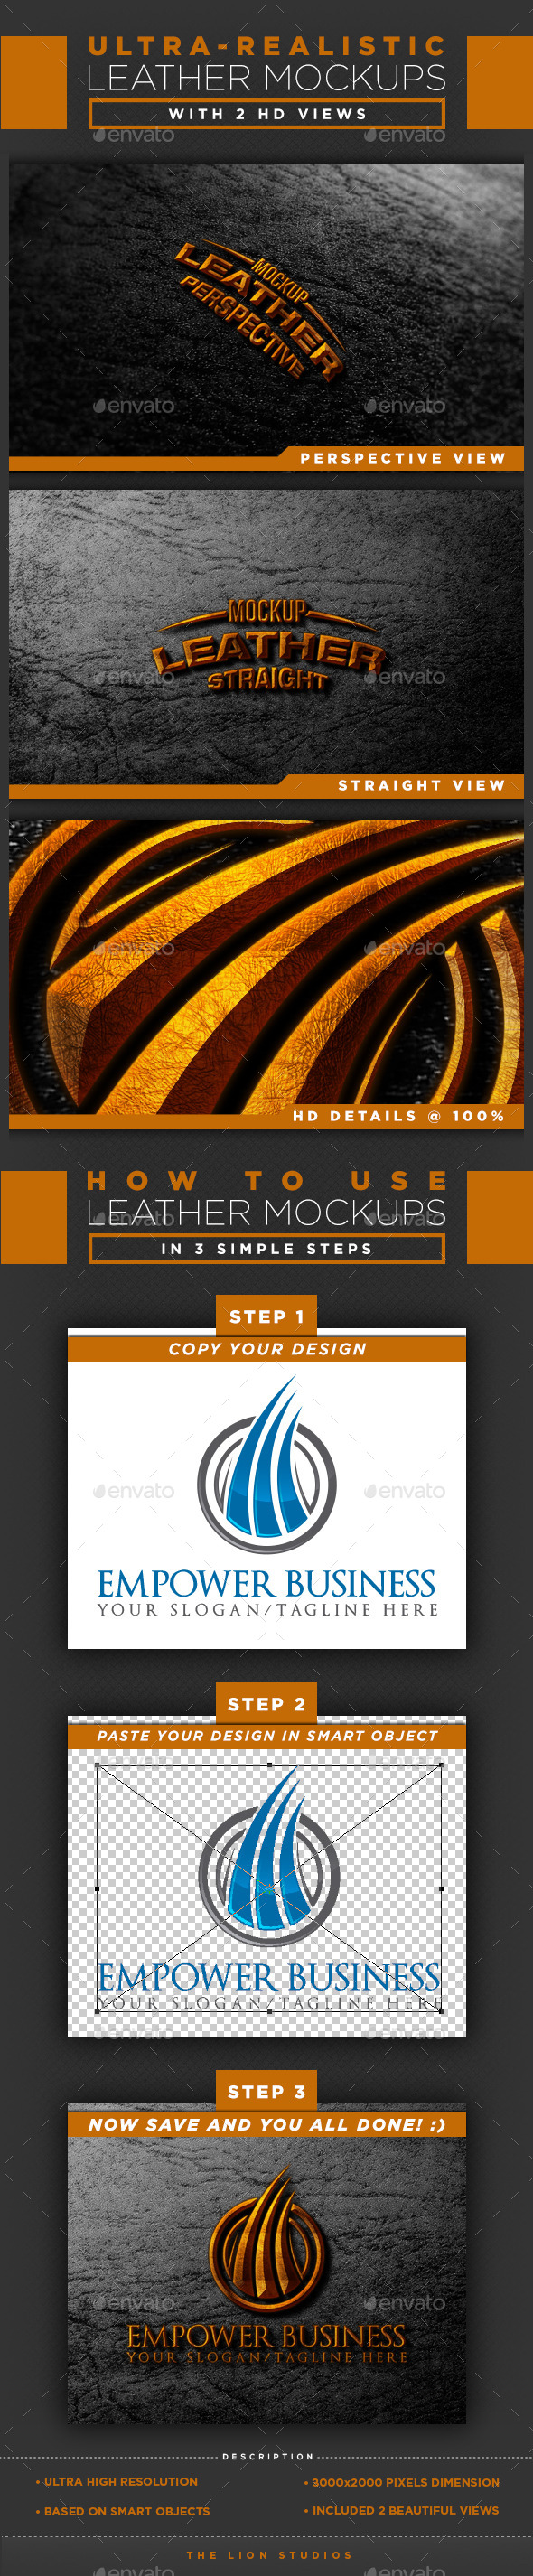 HD Leather Mockups - Logo Product Mock-Ups